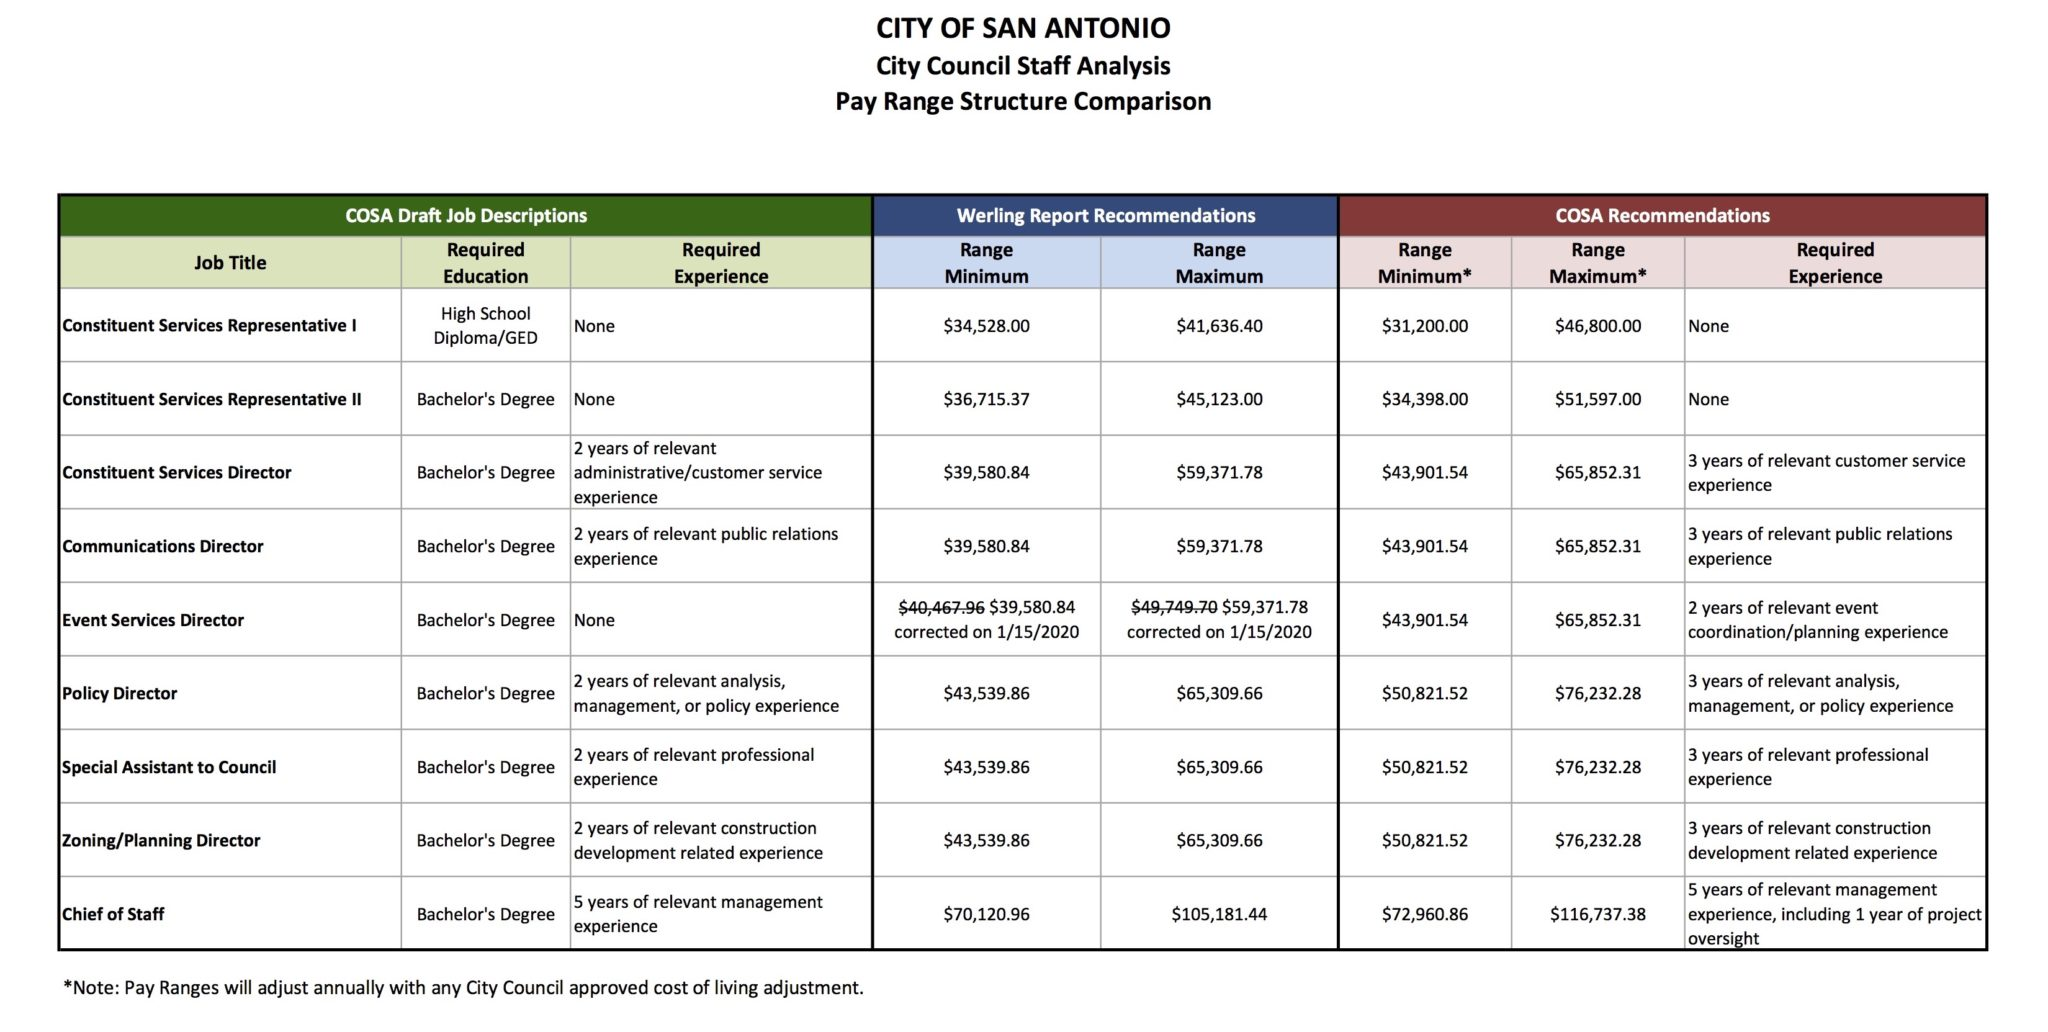 This chart shows a comparison of pay ranges and required experiences for various Council aide positions as recommended by Werling Associates and City of San Antonio (COSA) Human Resources staff.